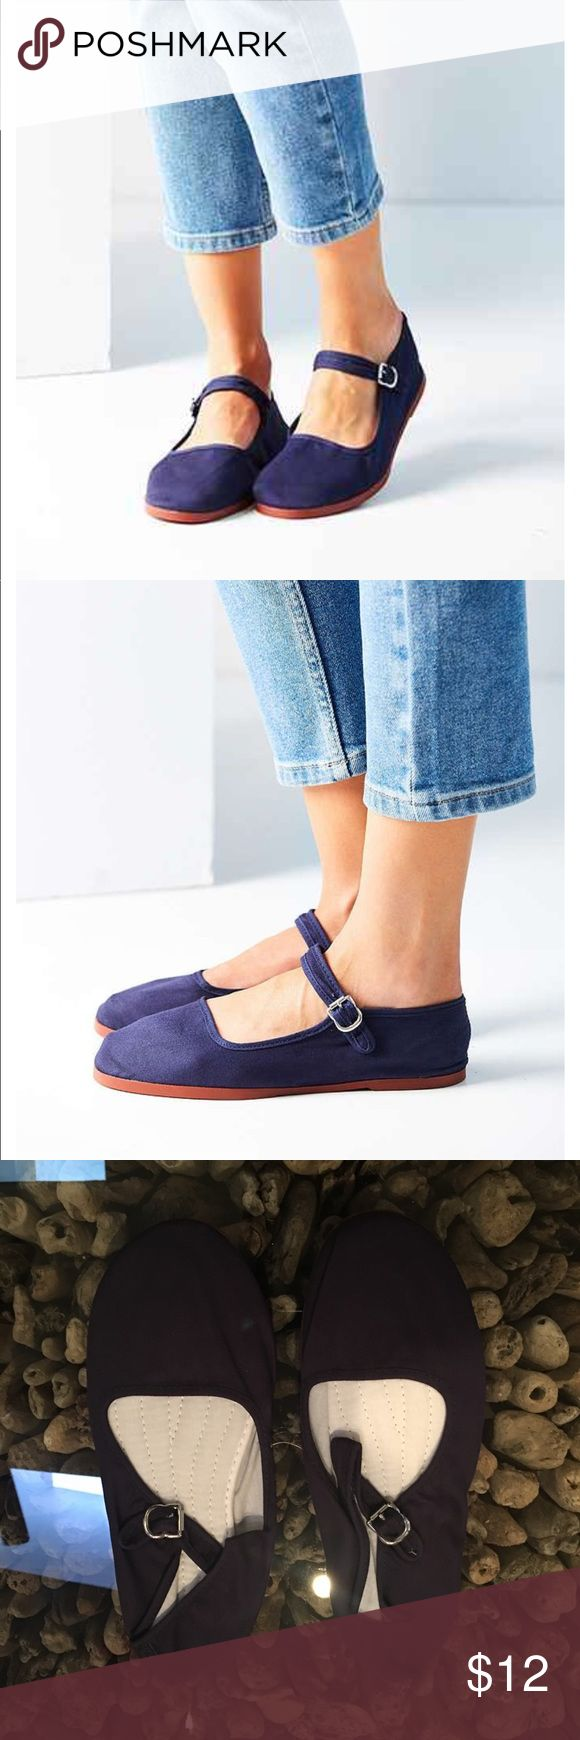 Urban Outfitters - Cotton Mary Jane - Navy. NWT NWT.  Basic Mary Jane. Urban Outfitters Shoes Flats & Loafers